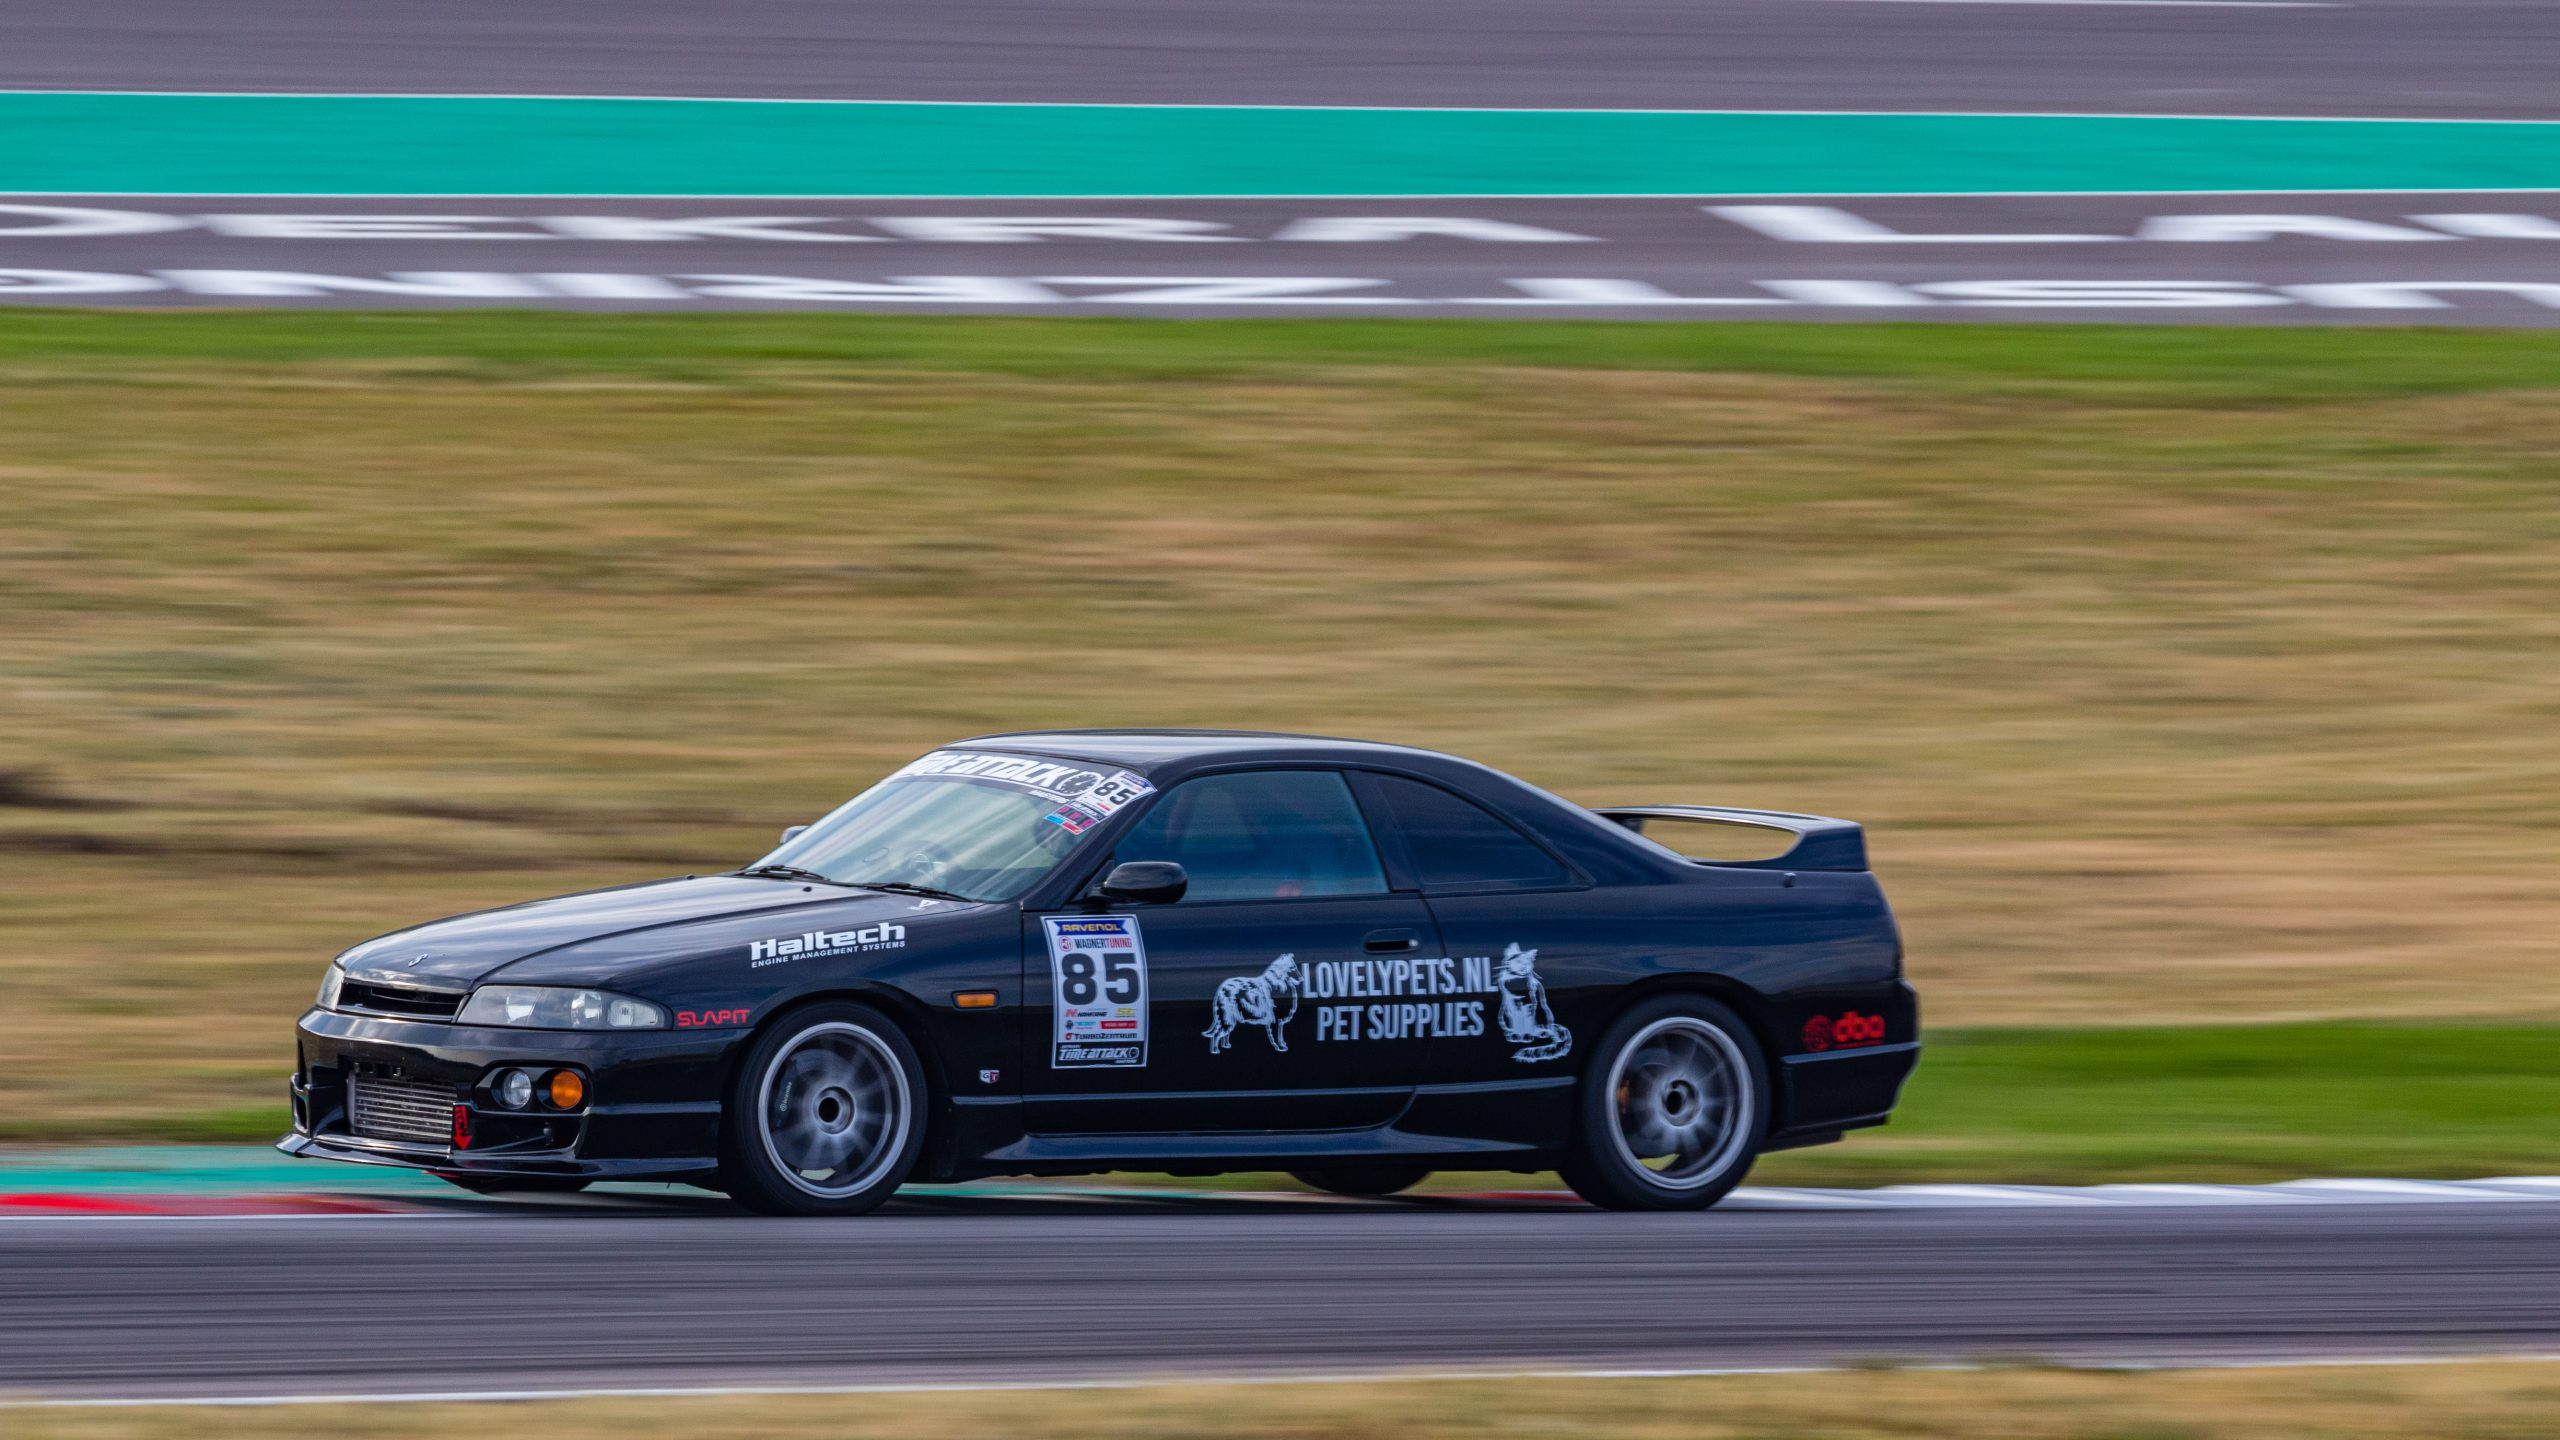 Torsij Motorsport at Eurospeedway Lauzit during Reisbrennen 2019